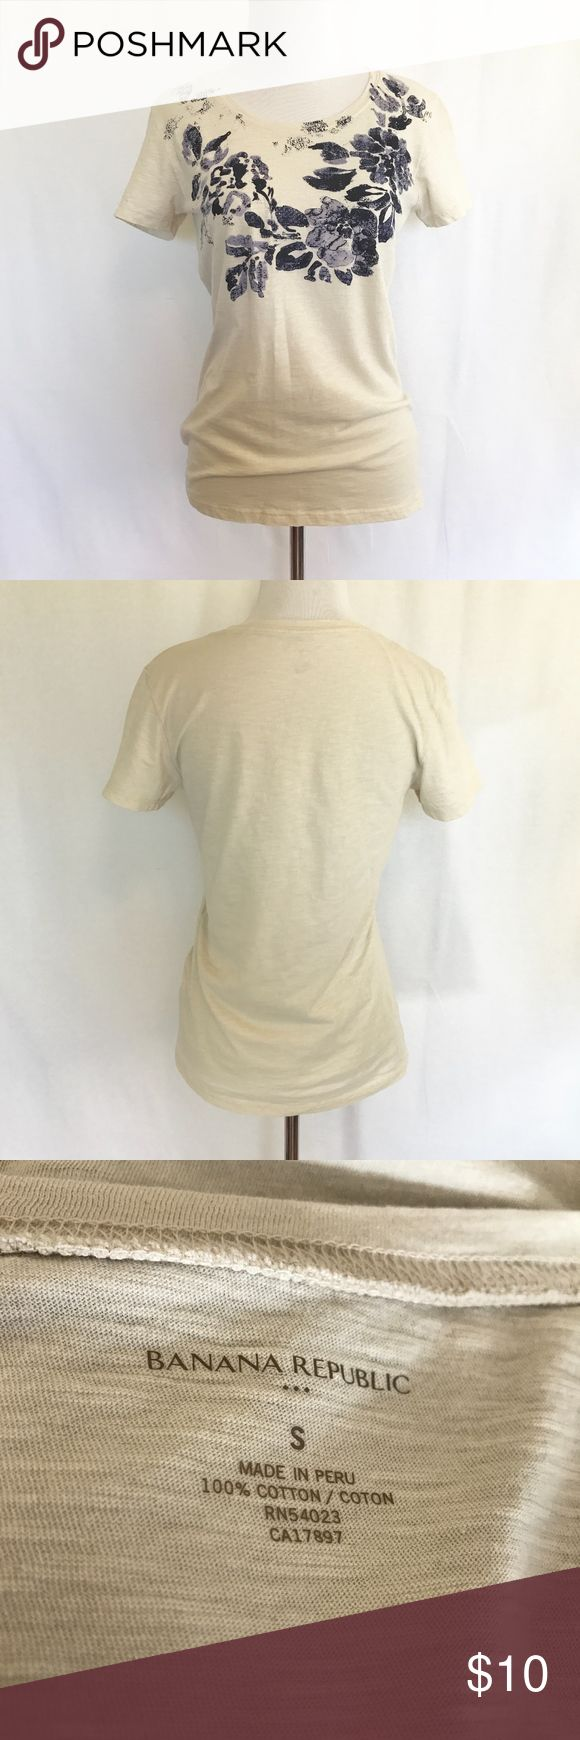 Banana Republic - Floral T-Shirt - Sz. S Casual t-shirt by Banana Republic in size small.   Features a blue floral motif along the neckline and bust.   True to size. Very good condition. Banana Republic Tops Tees - Short Sleeve